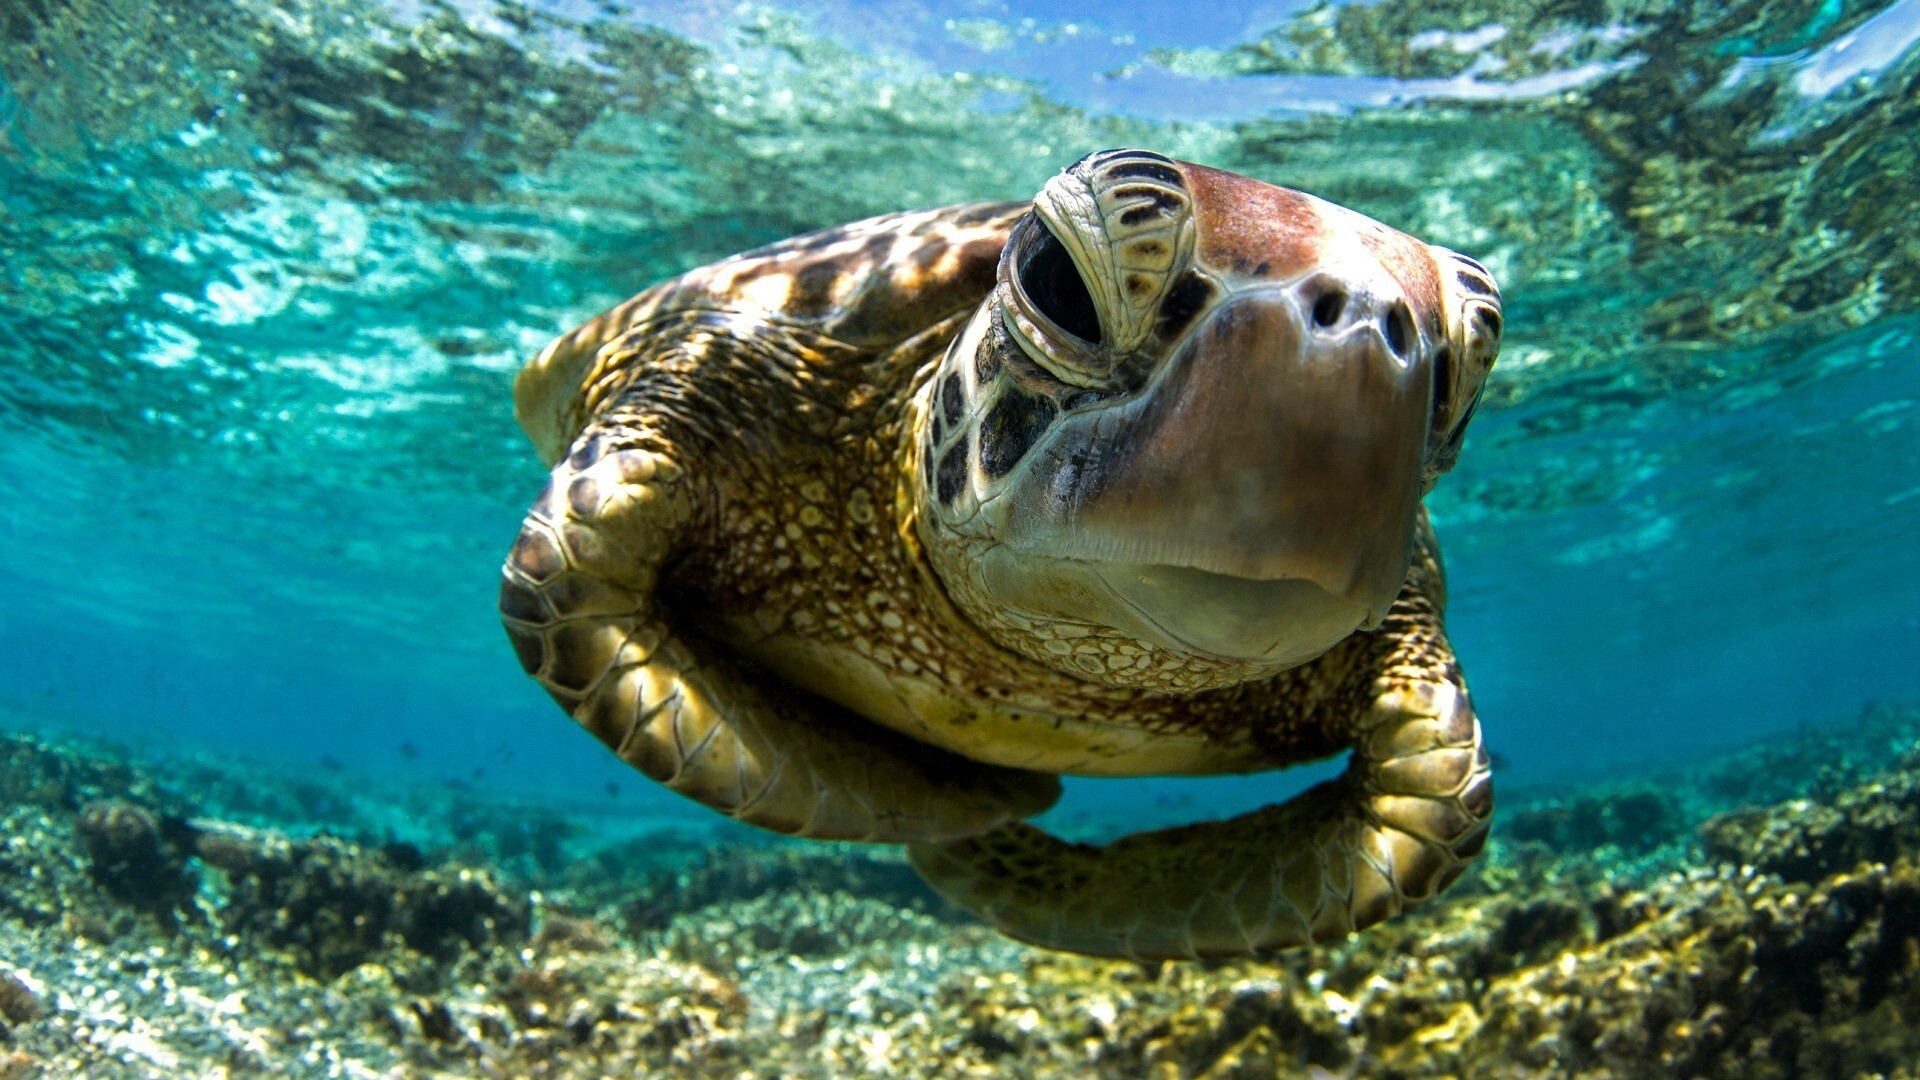 Funny 3d Animal Turtle Wallpapers Hd: Turtle Close Up Face In Sea